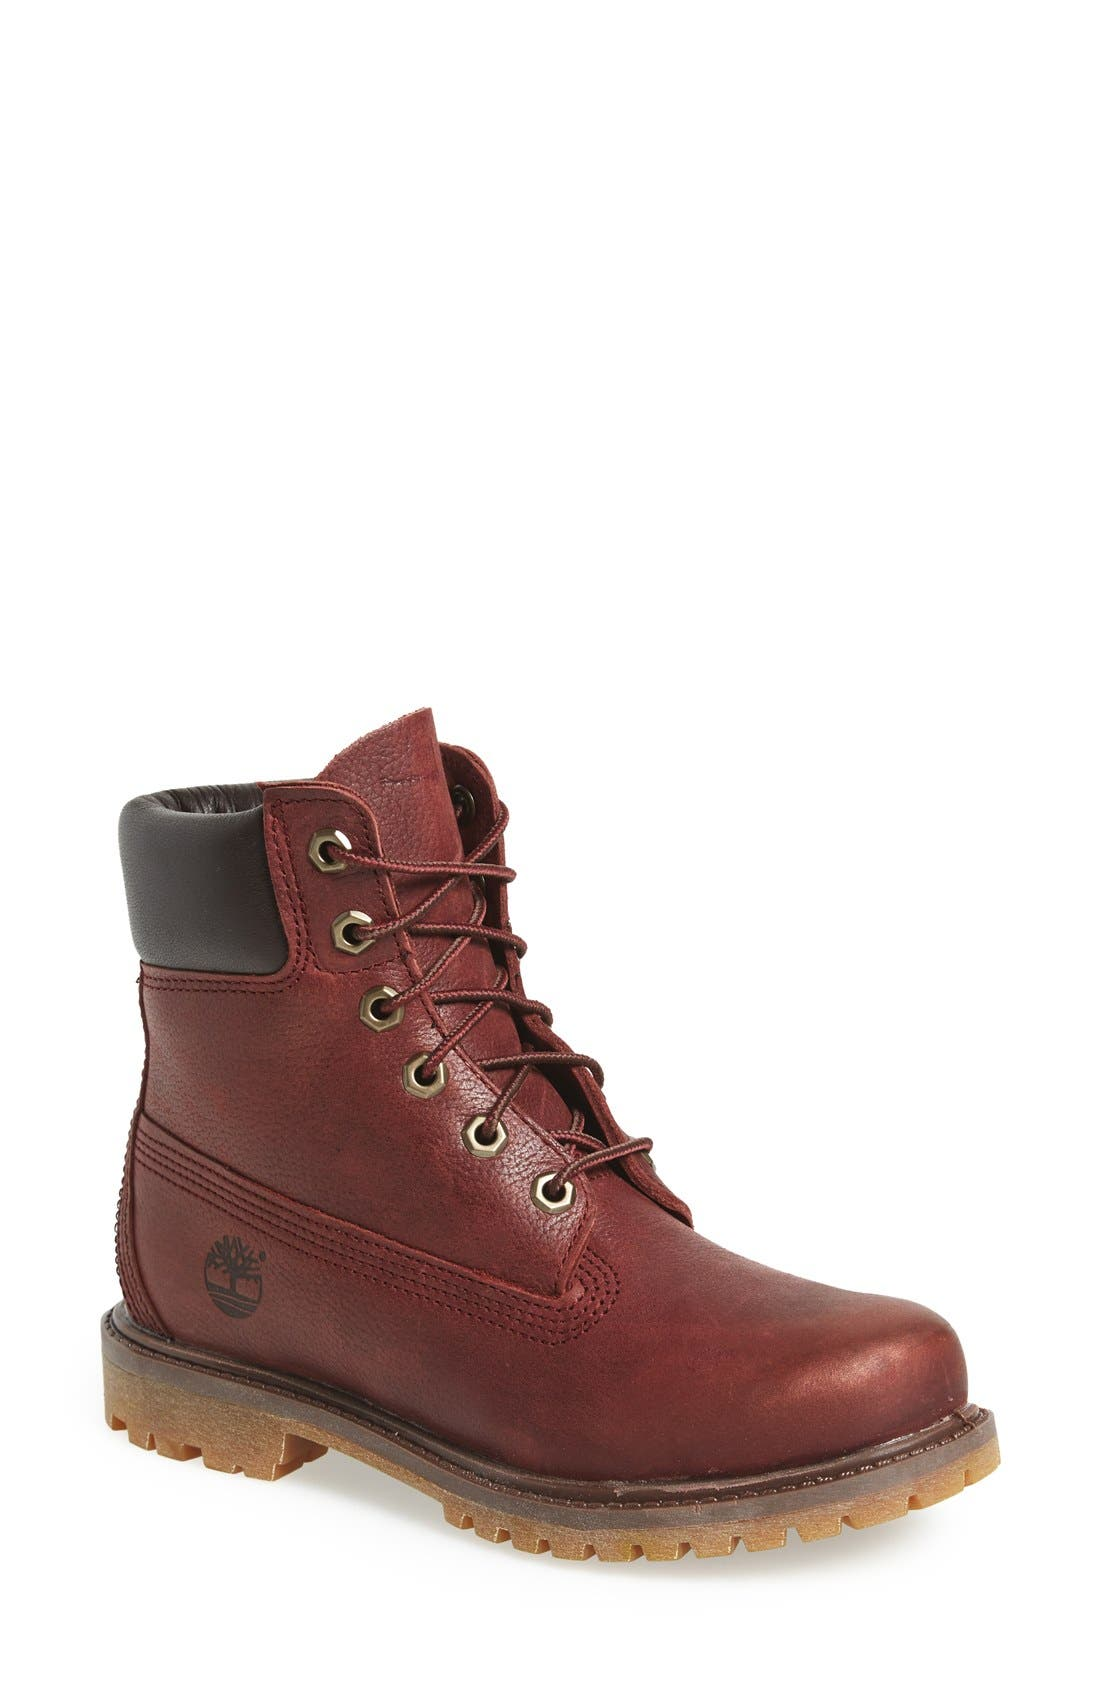 Main Image - Timberland '6 Inch Premium' Waterproof Boot (Women)